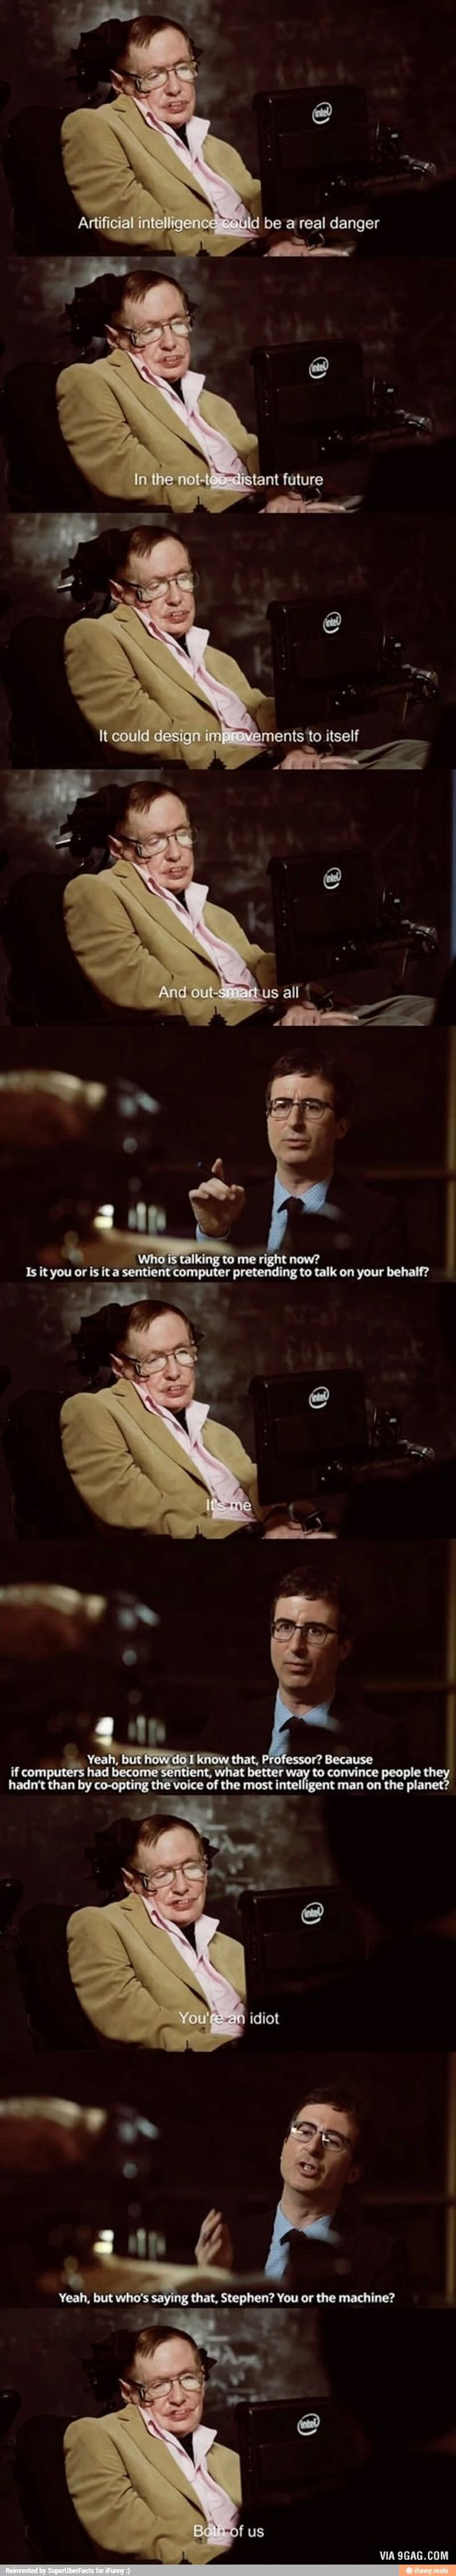 Owned by Steven hawking